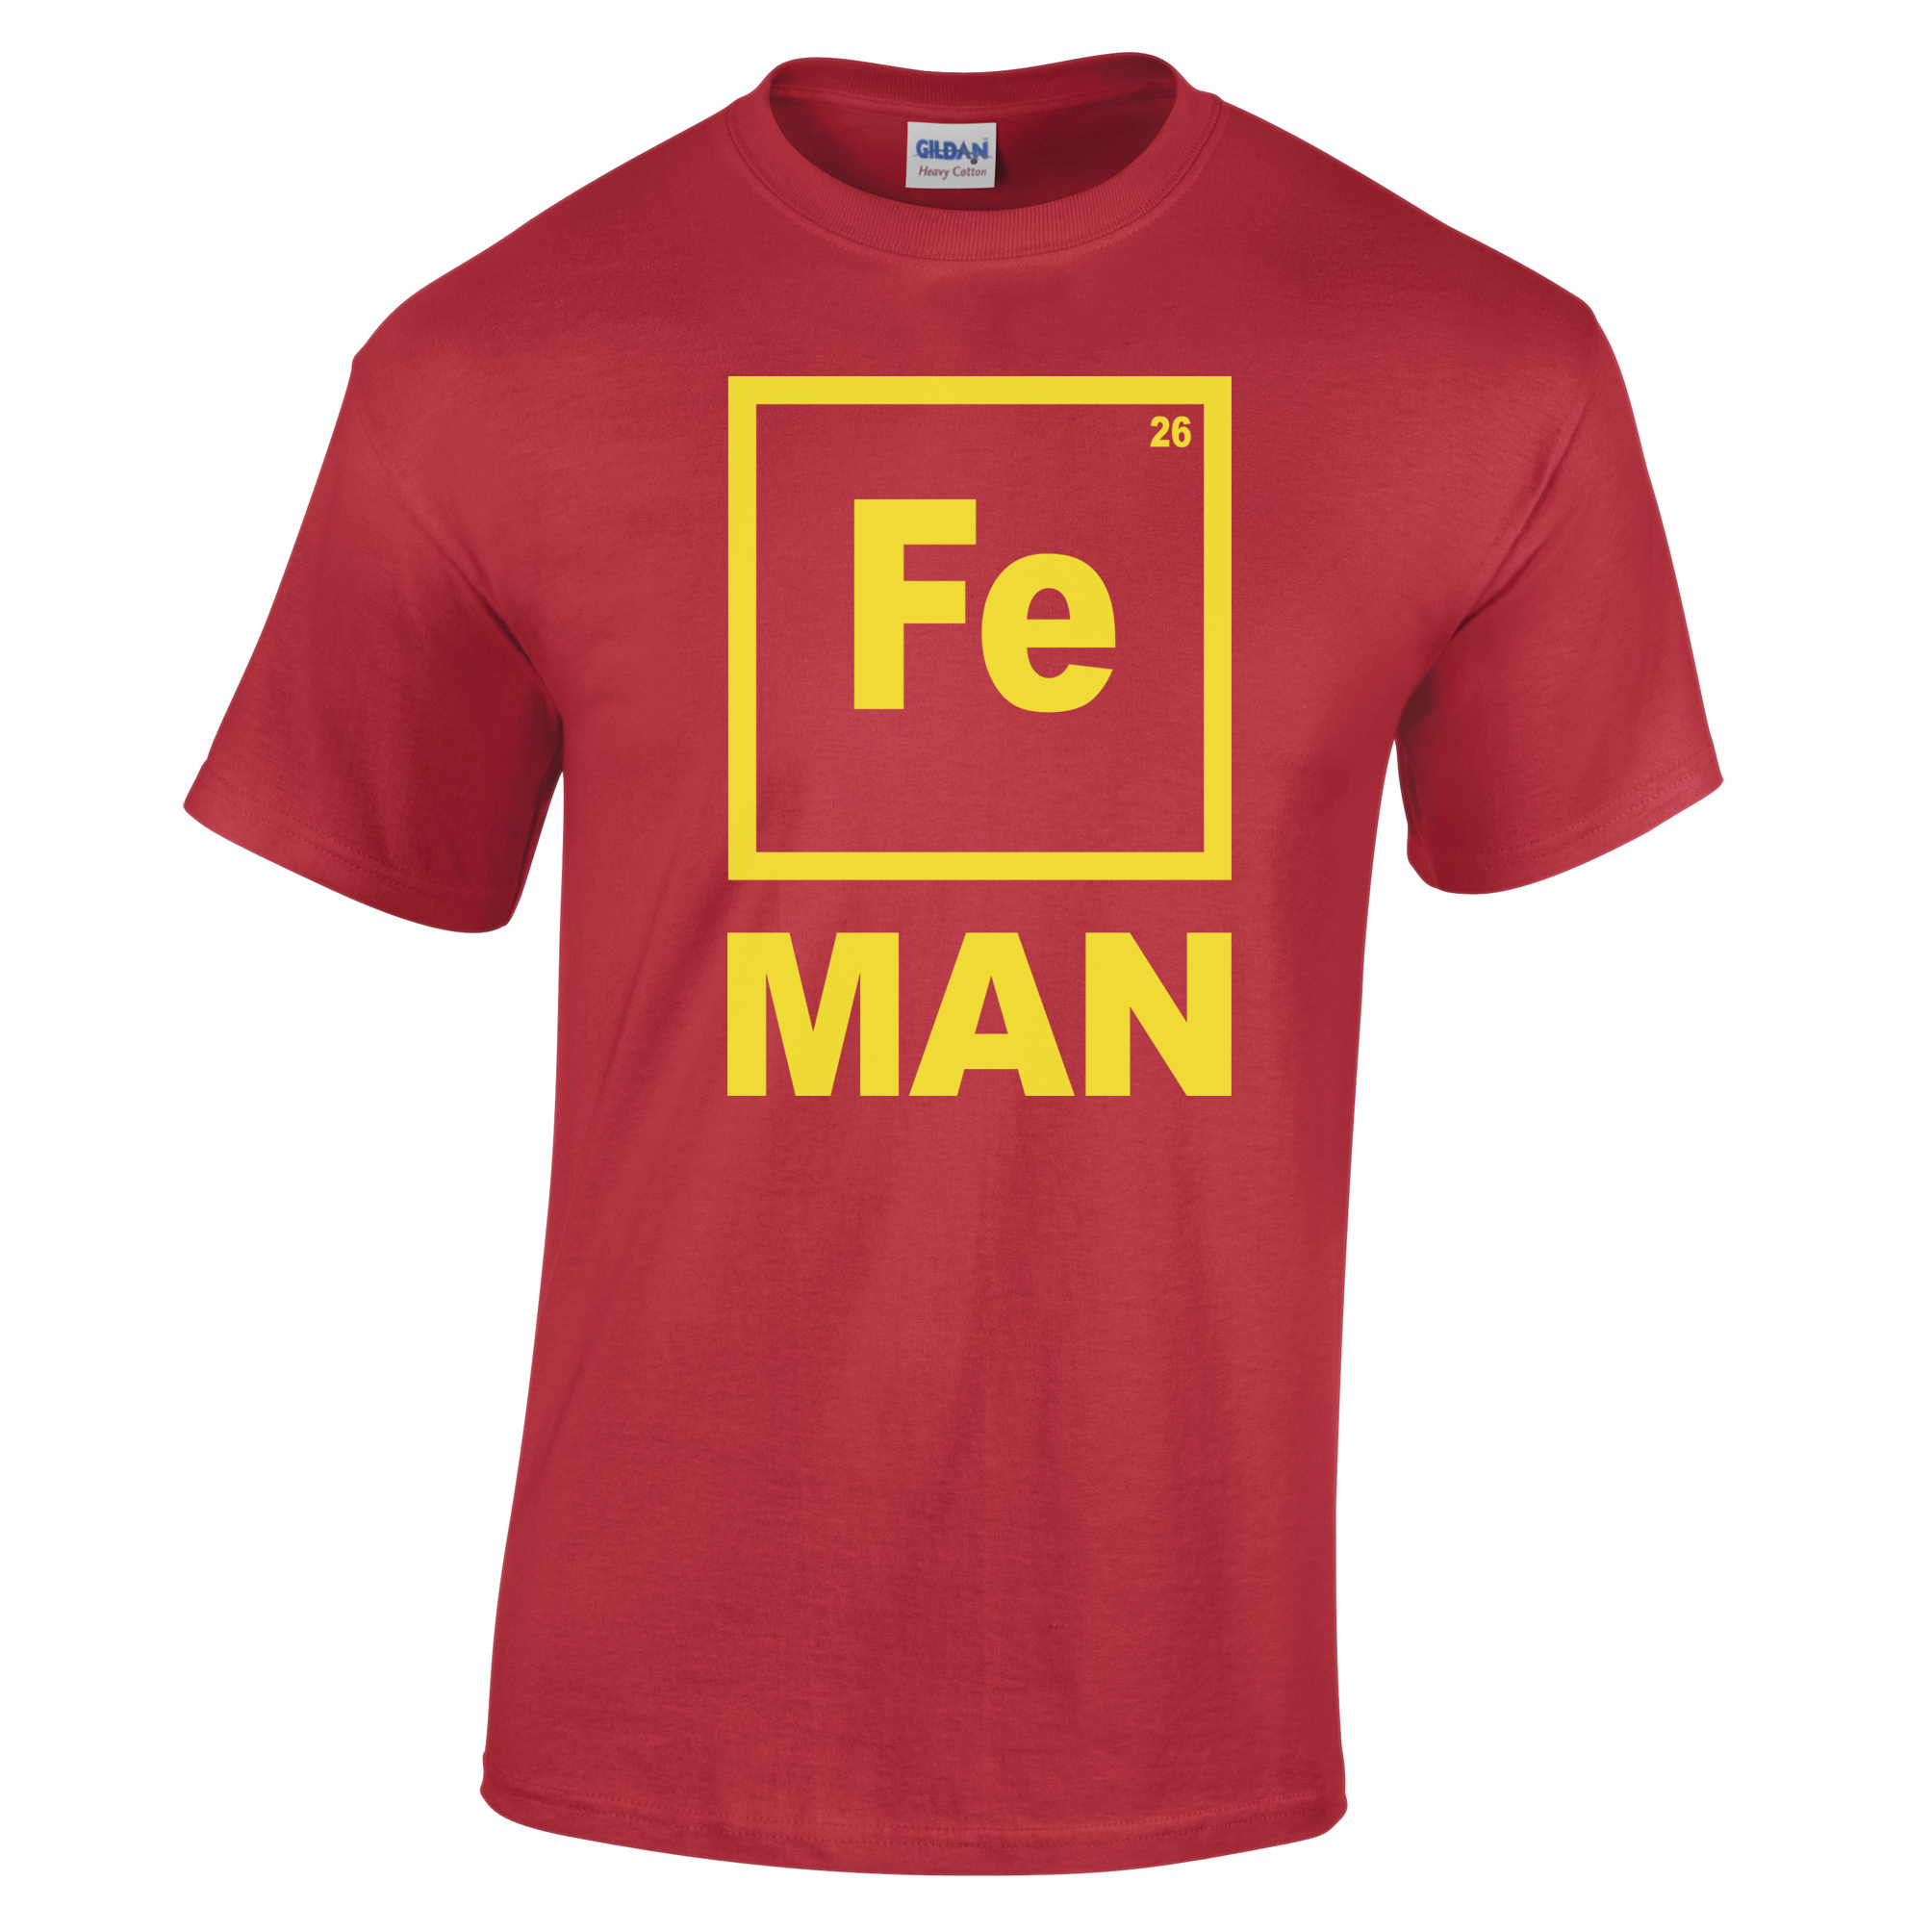 Table english pub table antique periodic table product on alibaba com - Iron Man T Shirt Funny Chemistry Shirt Periodic Table Element Elemental Geeky Fe Men T